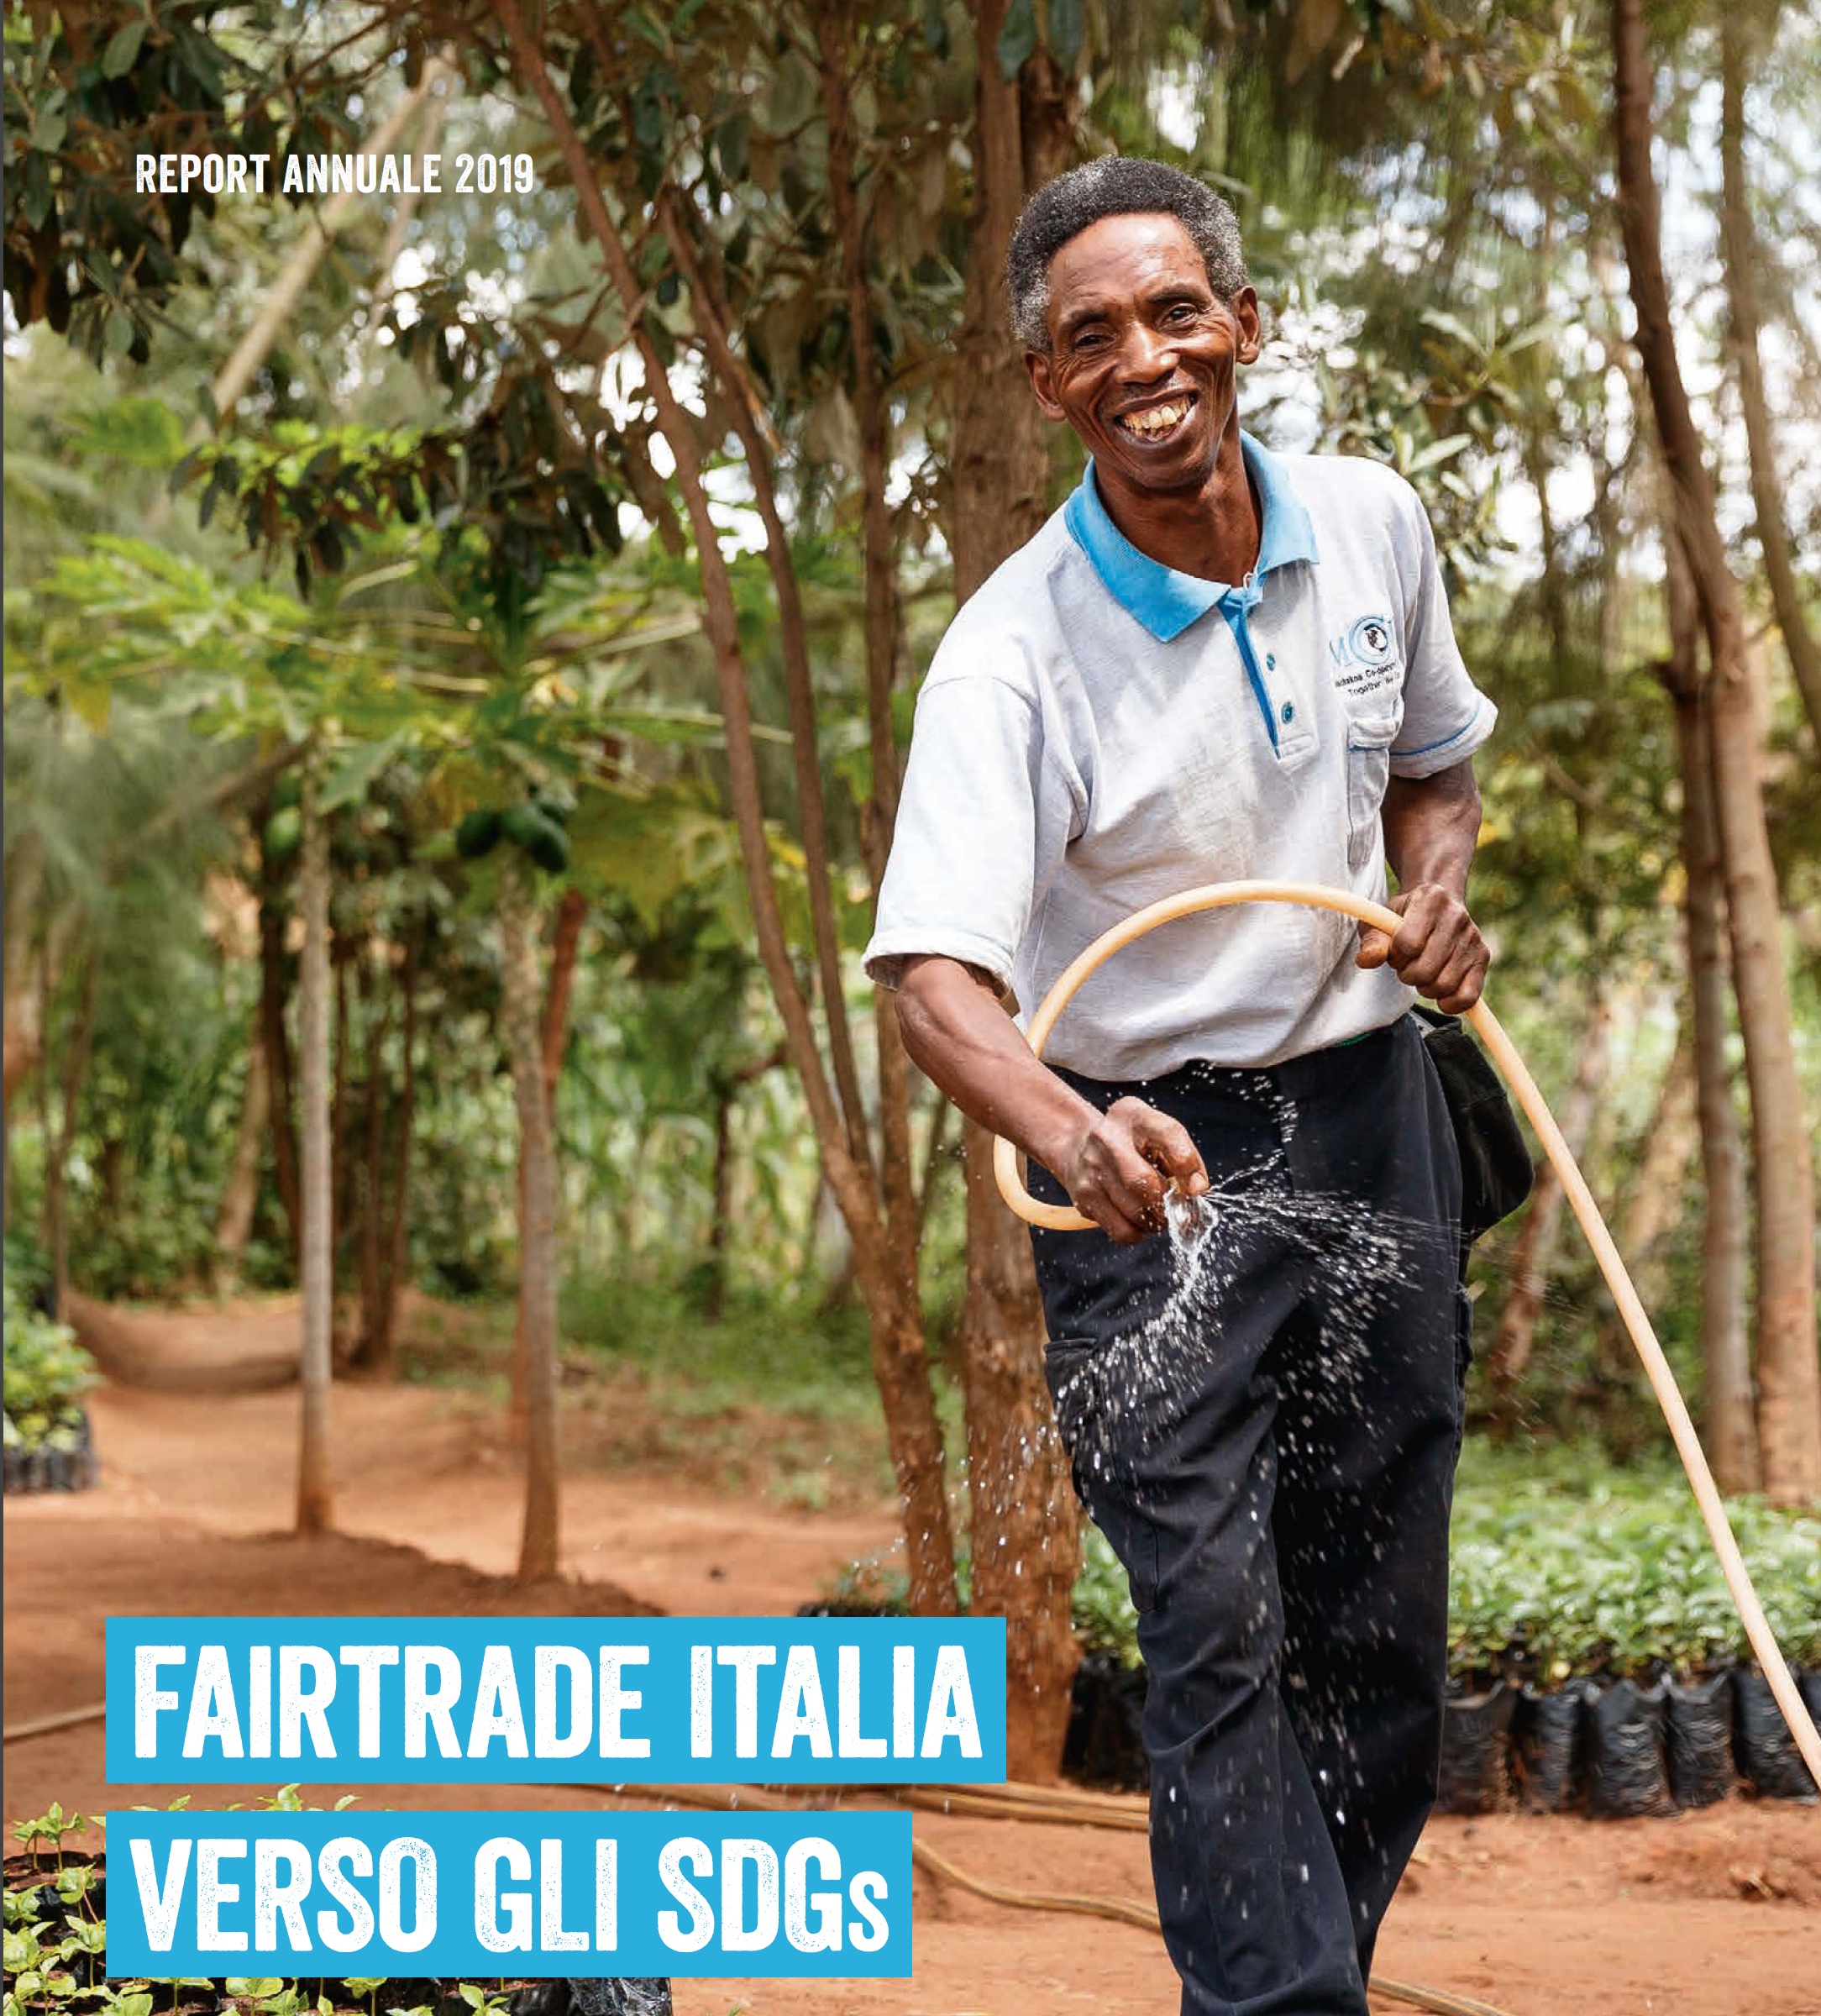 Report 2019 - Fairtrade Italia verso gli SDGs